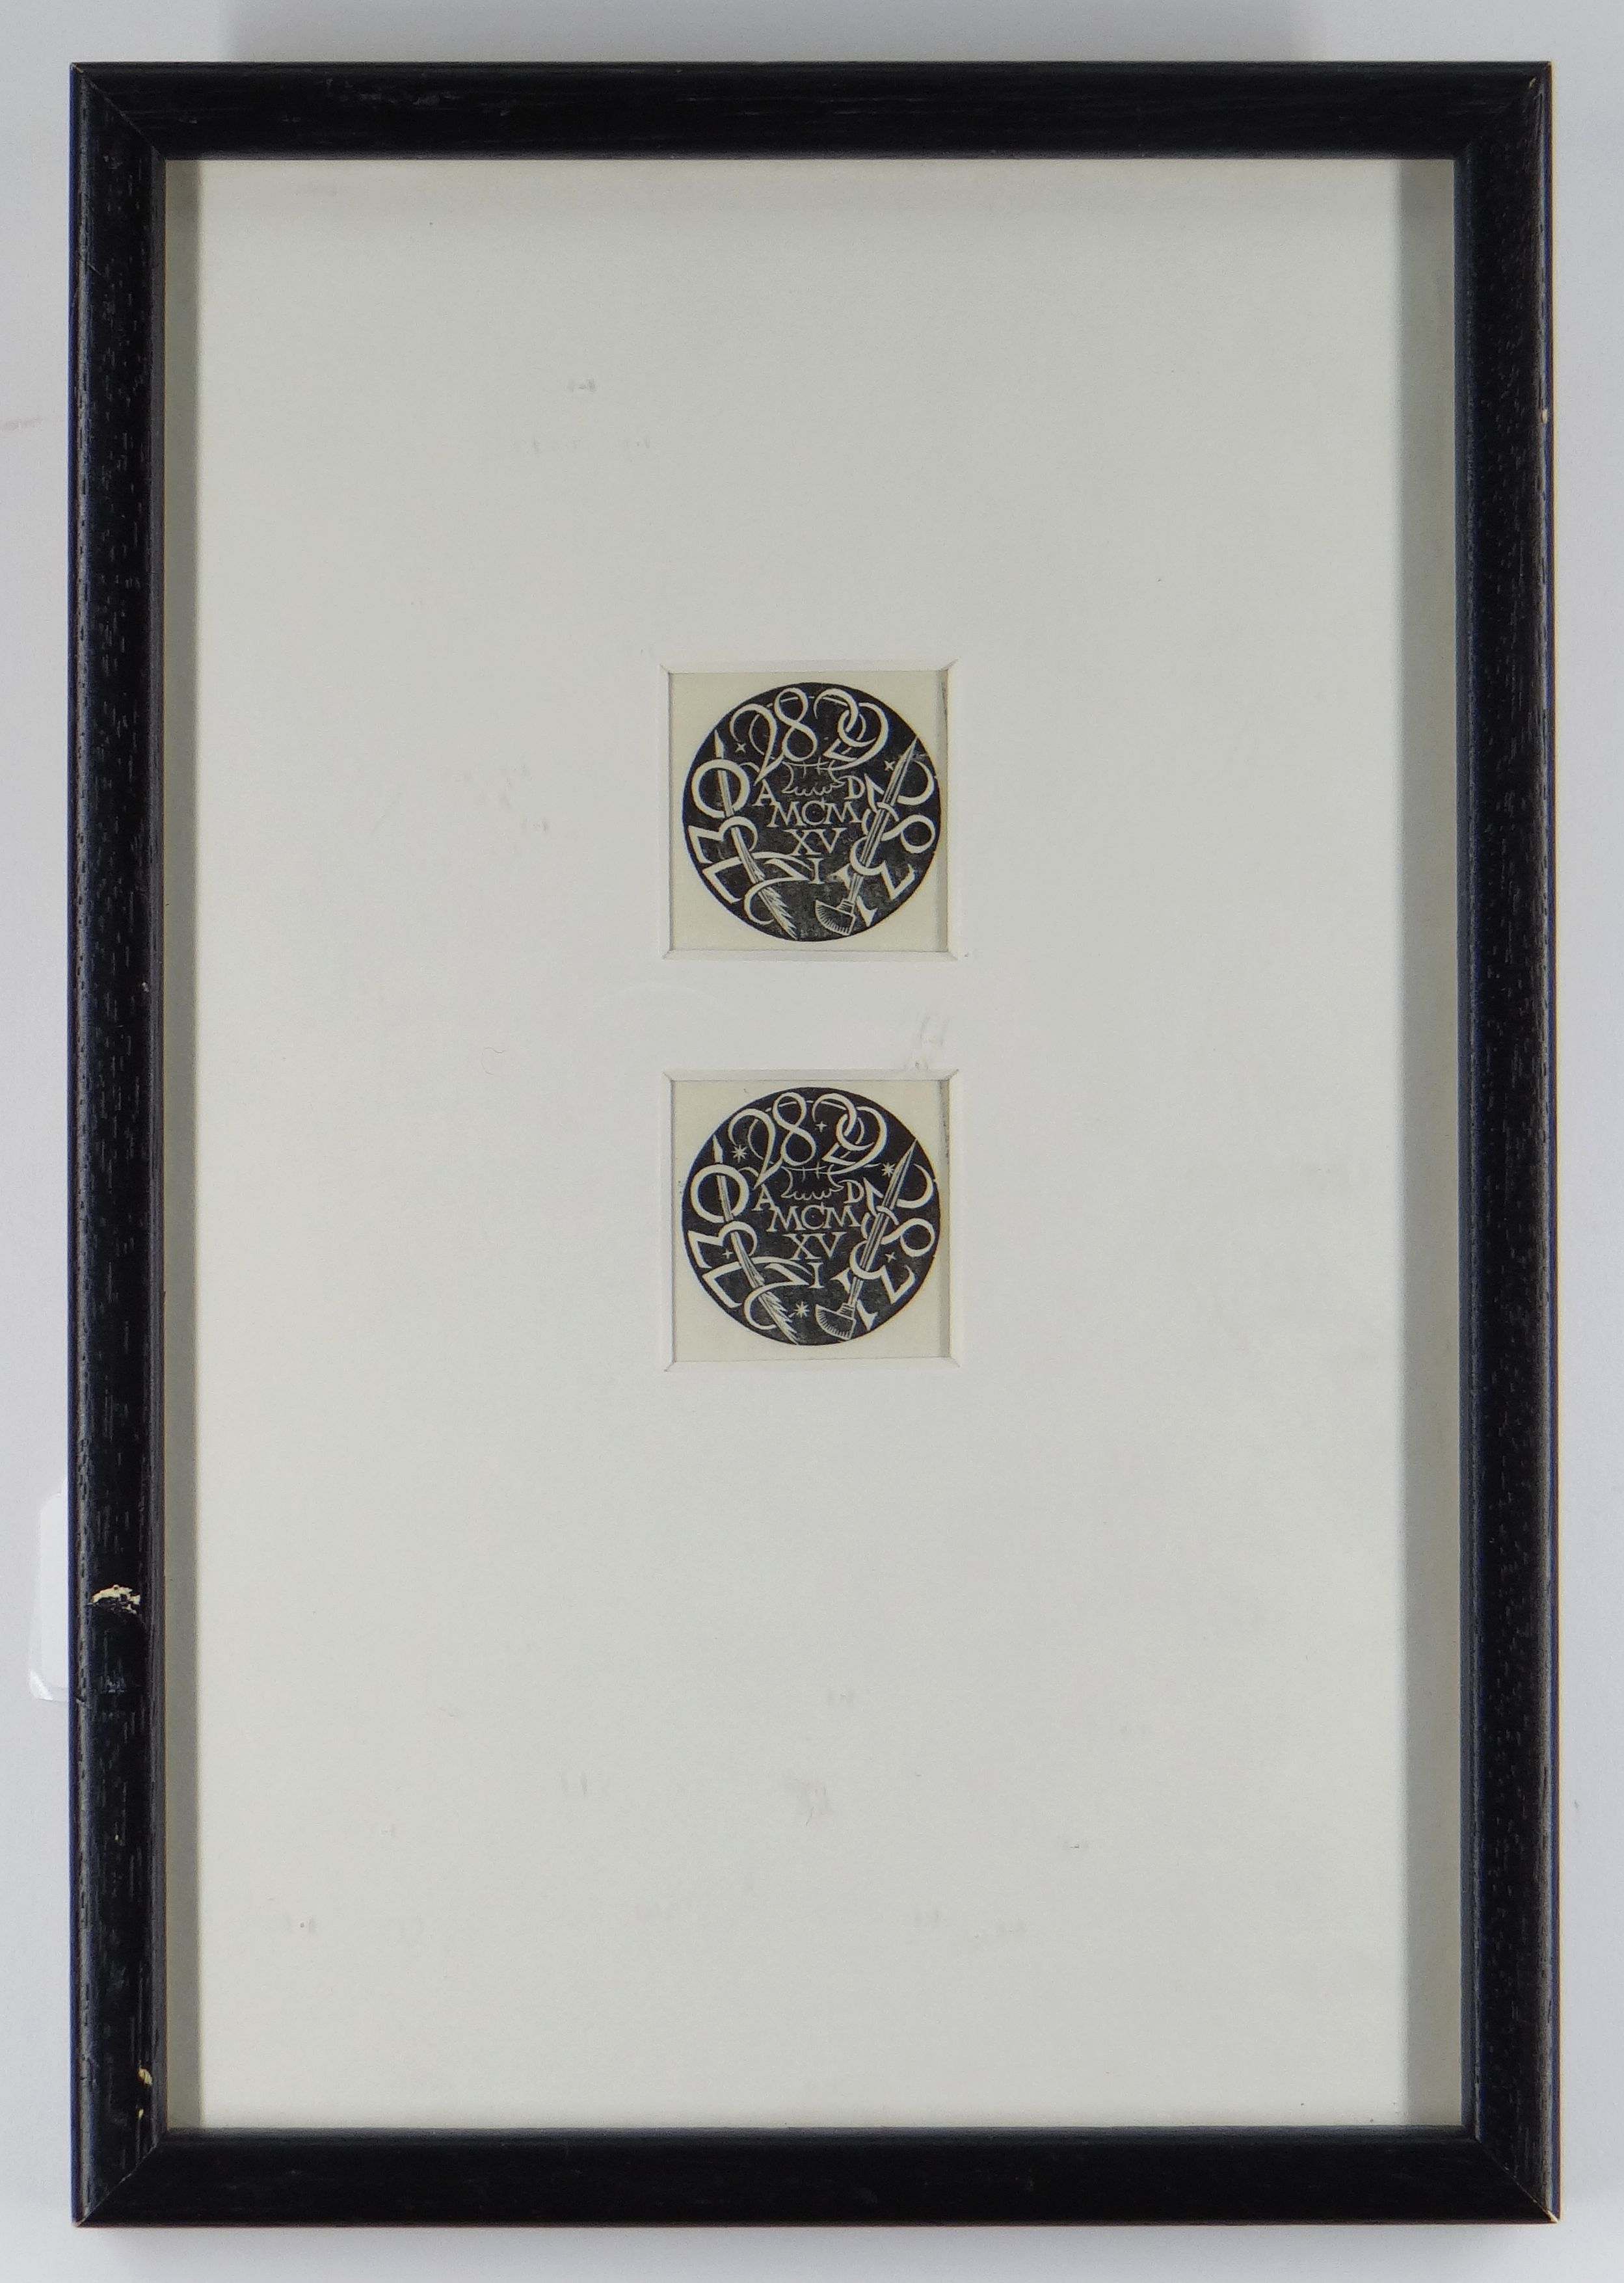 ERIC GILL pair of wood engravings framed together - entitled 'Circular Device', circa 1916, 4 x 4cms - Image 2 of 2